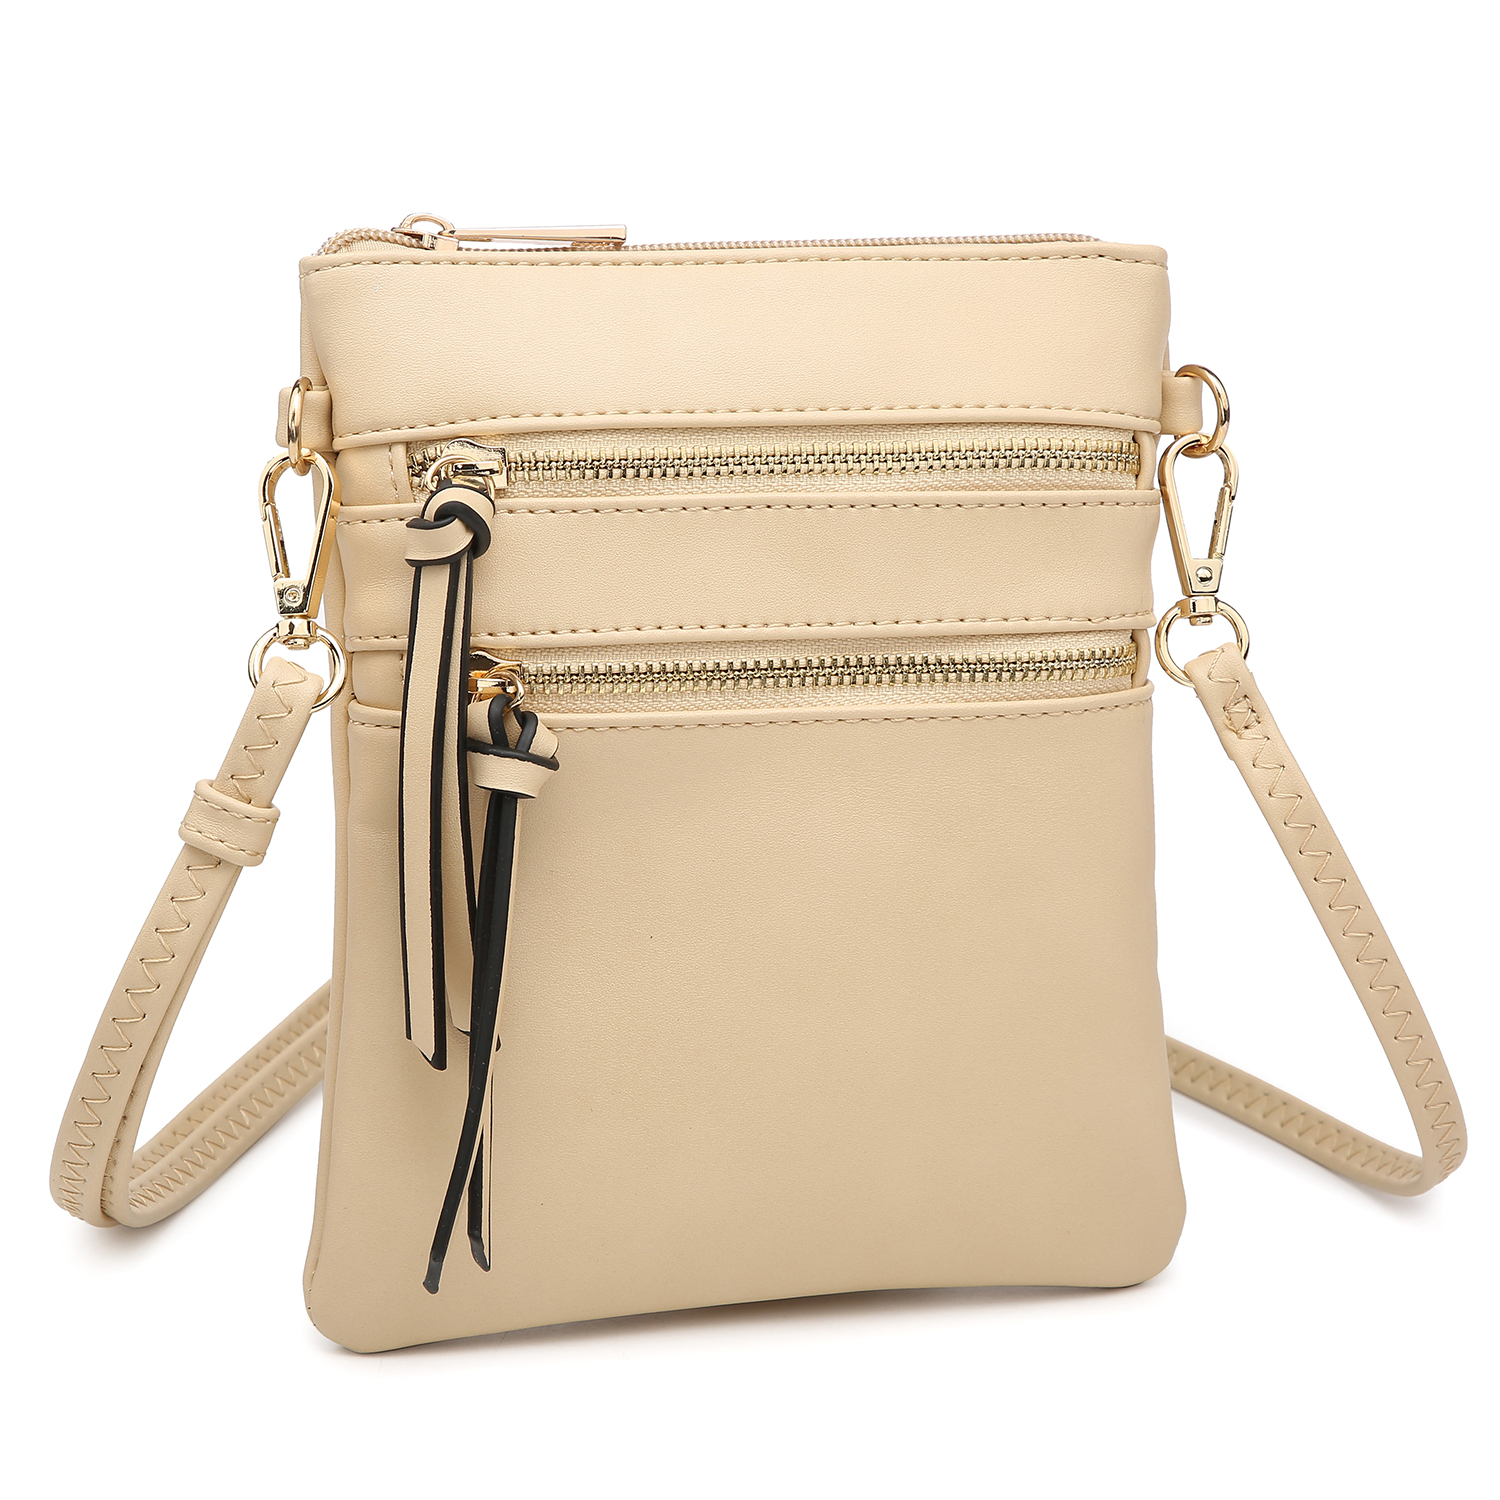 Gold-Tone Messenger Bag